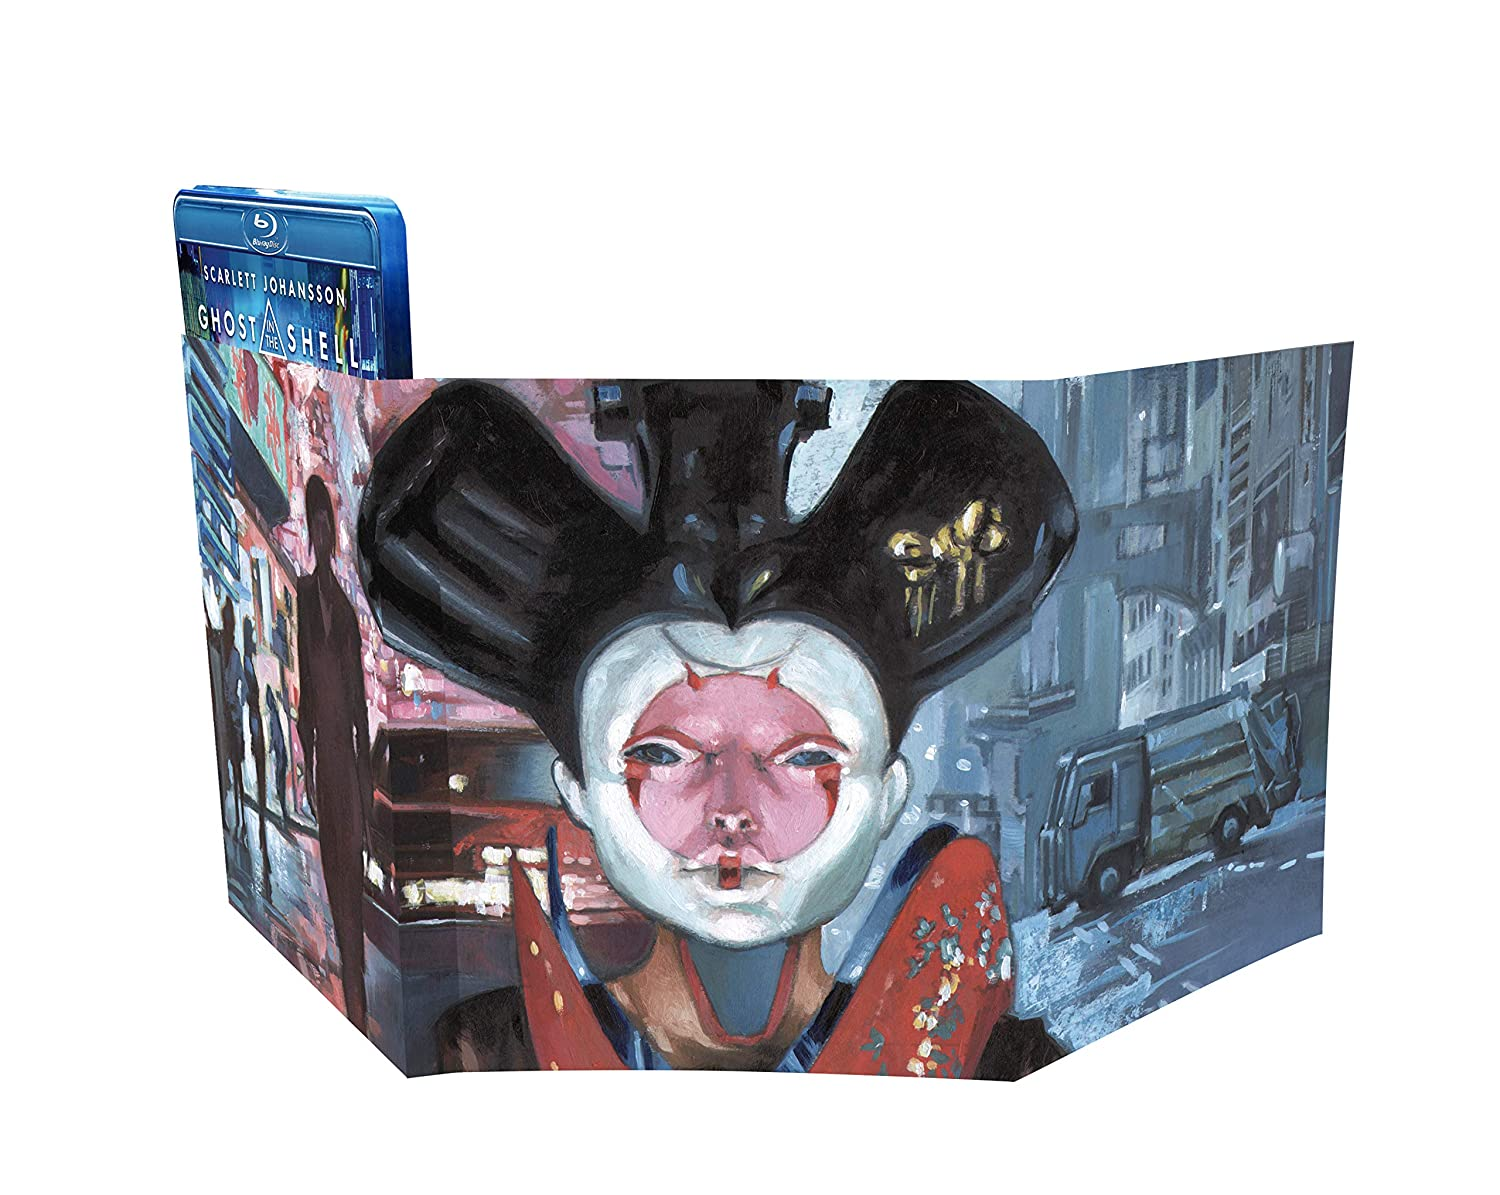 GHOST IN THE SHELL - GRAPHIC ART COLLECTION (LIMITED EDITION) (